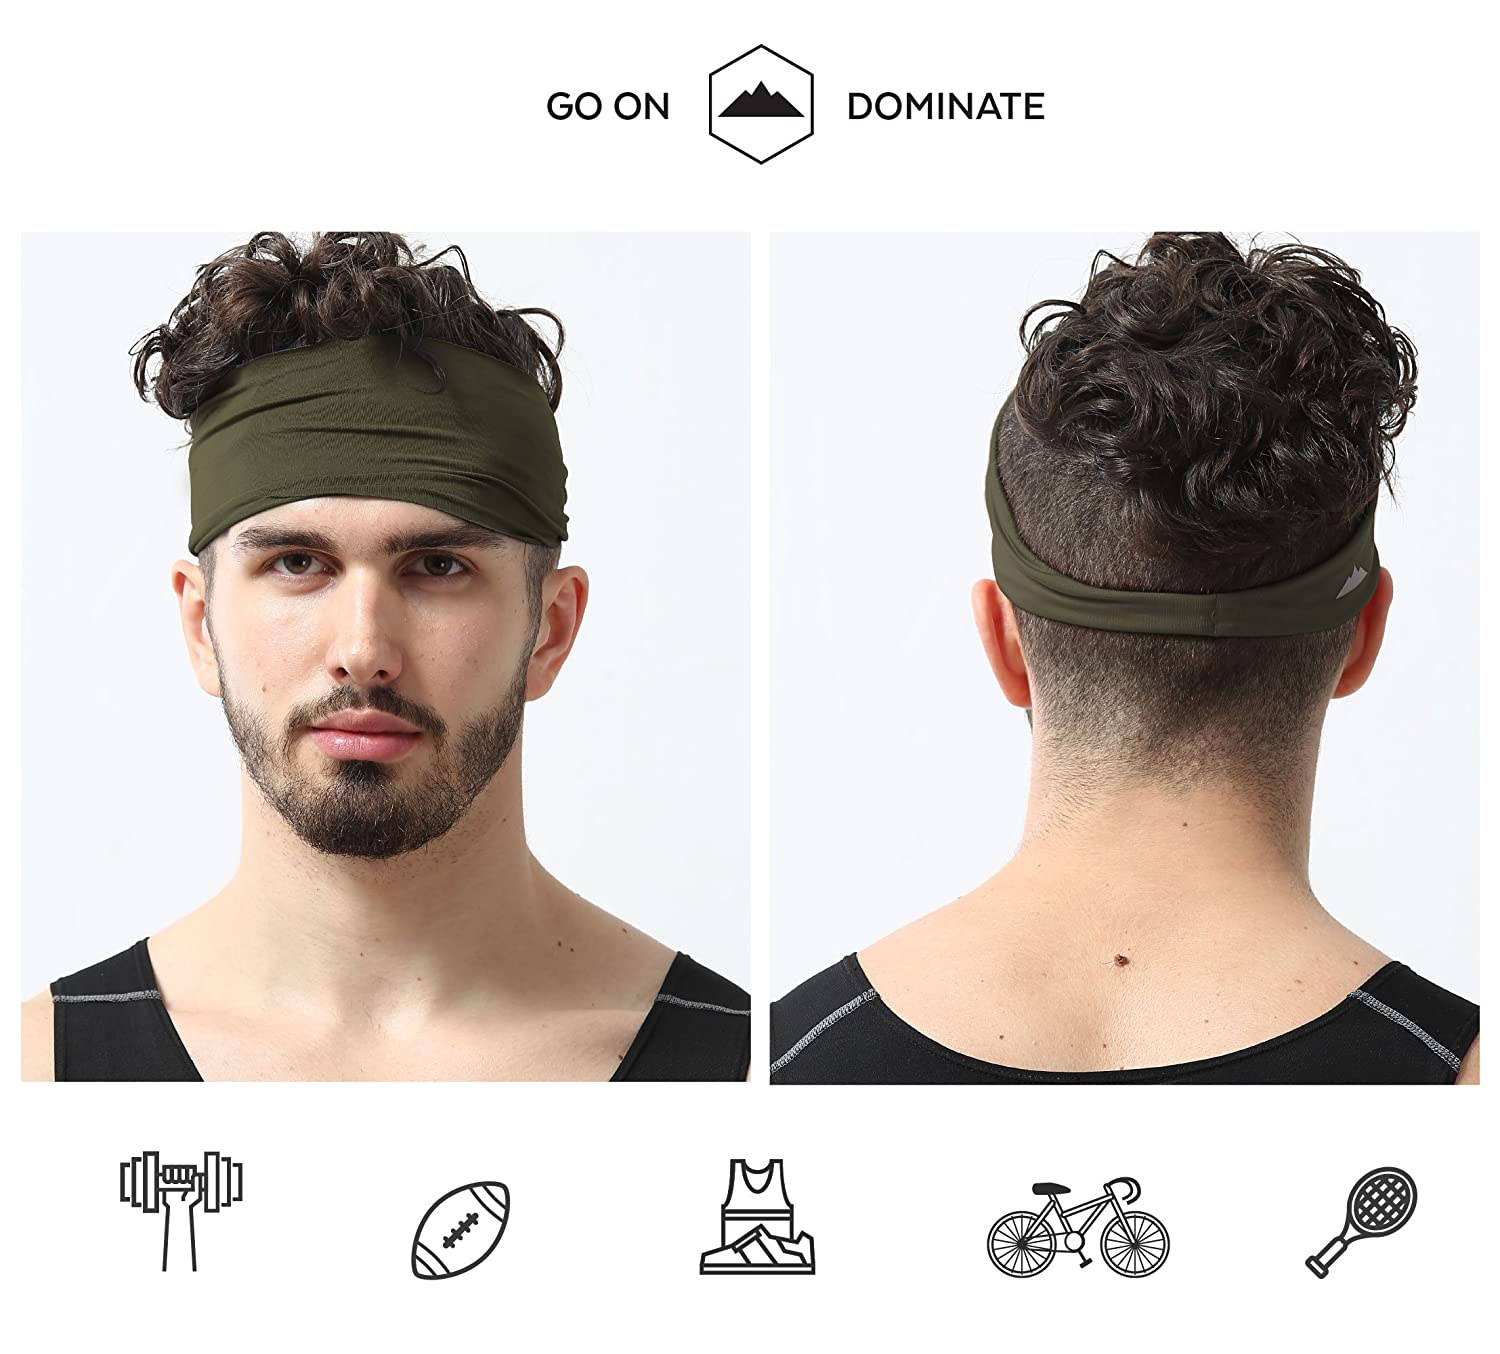 Mens Headband Dominating Competition Performance Image 2